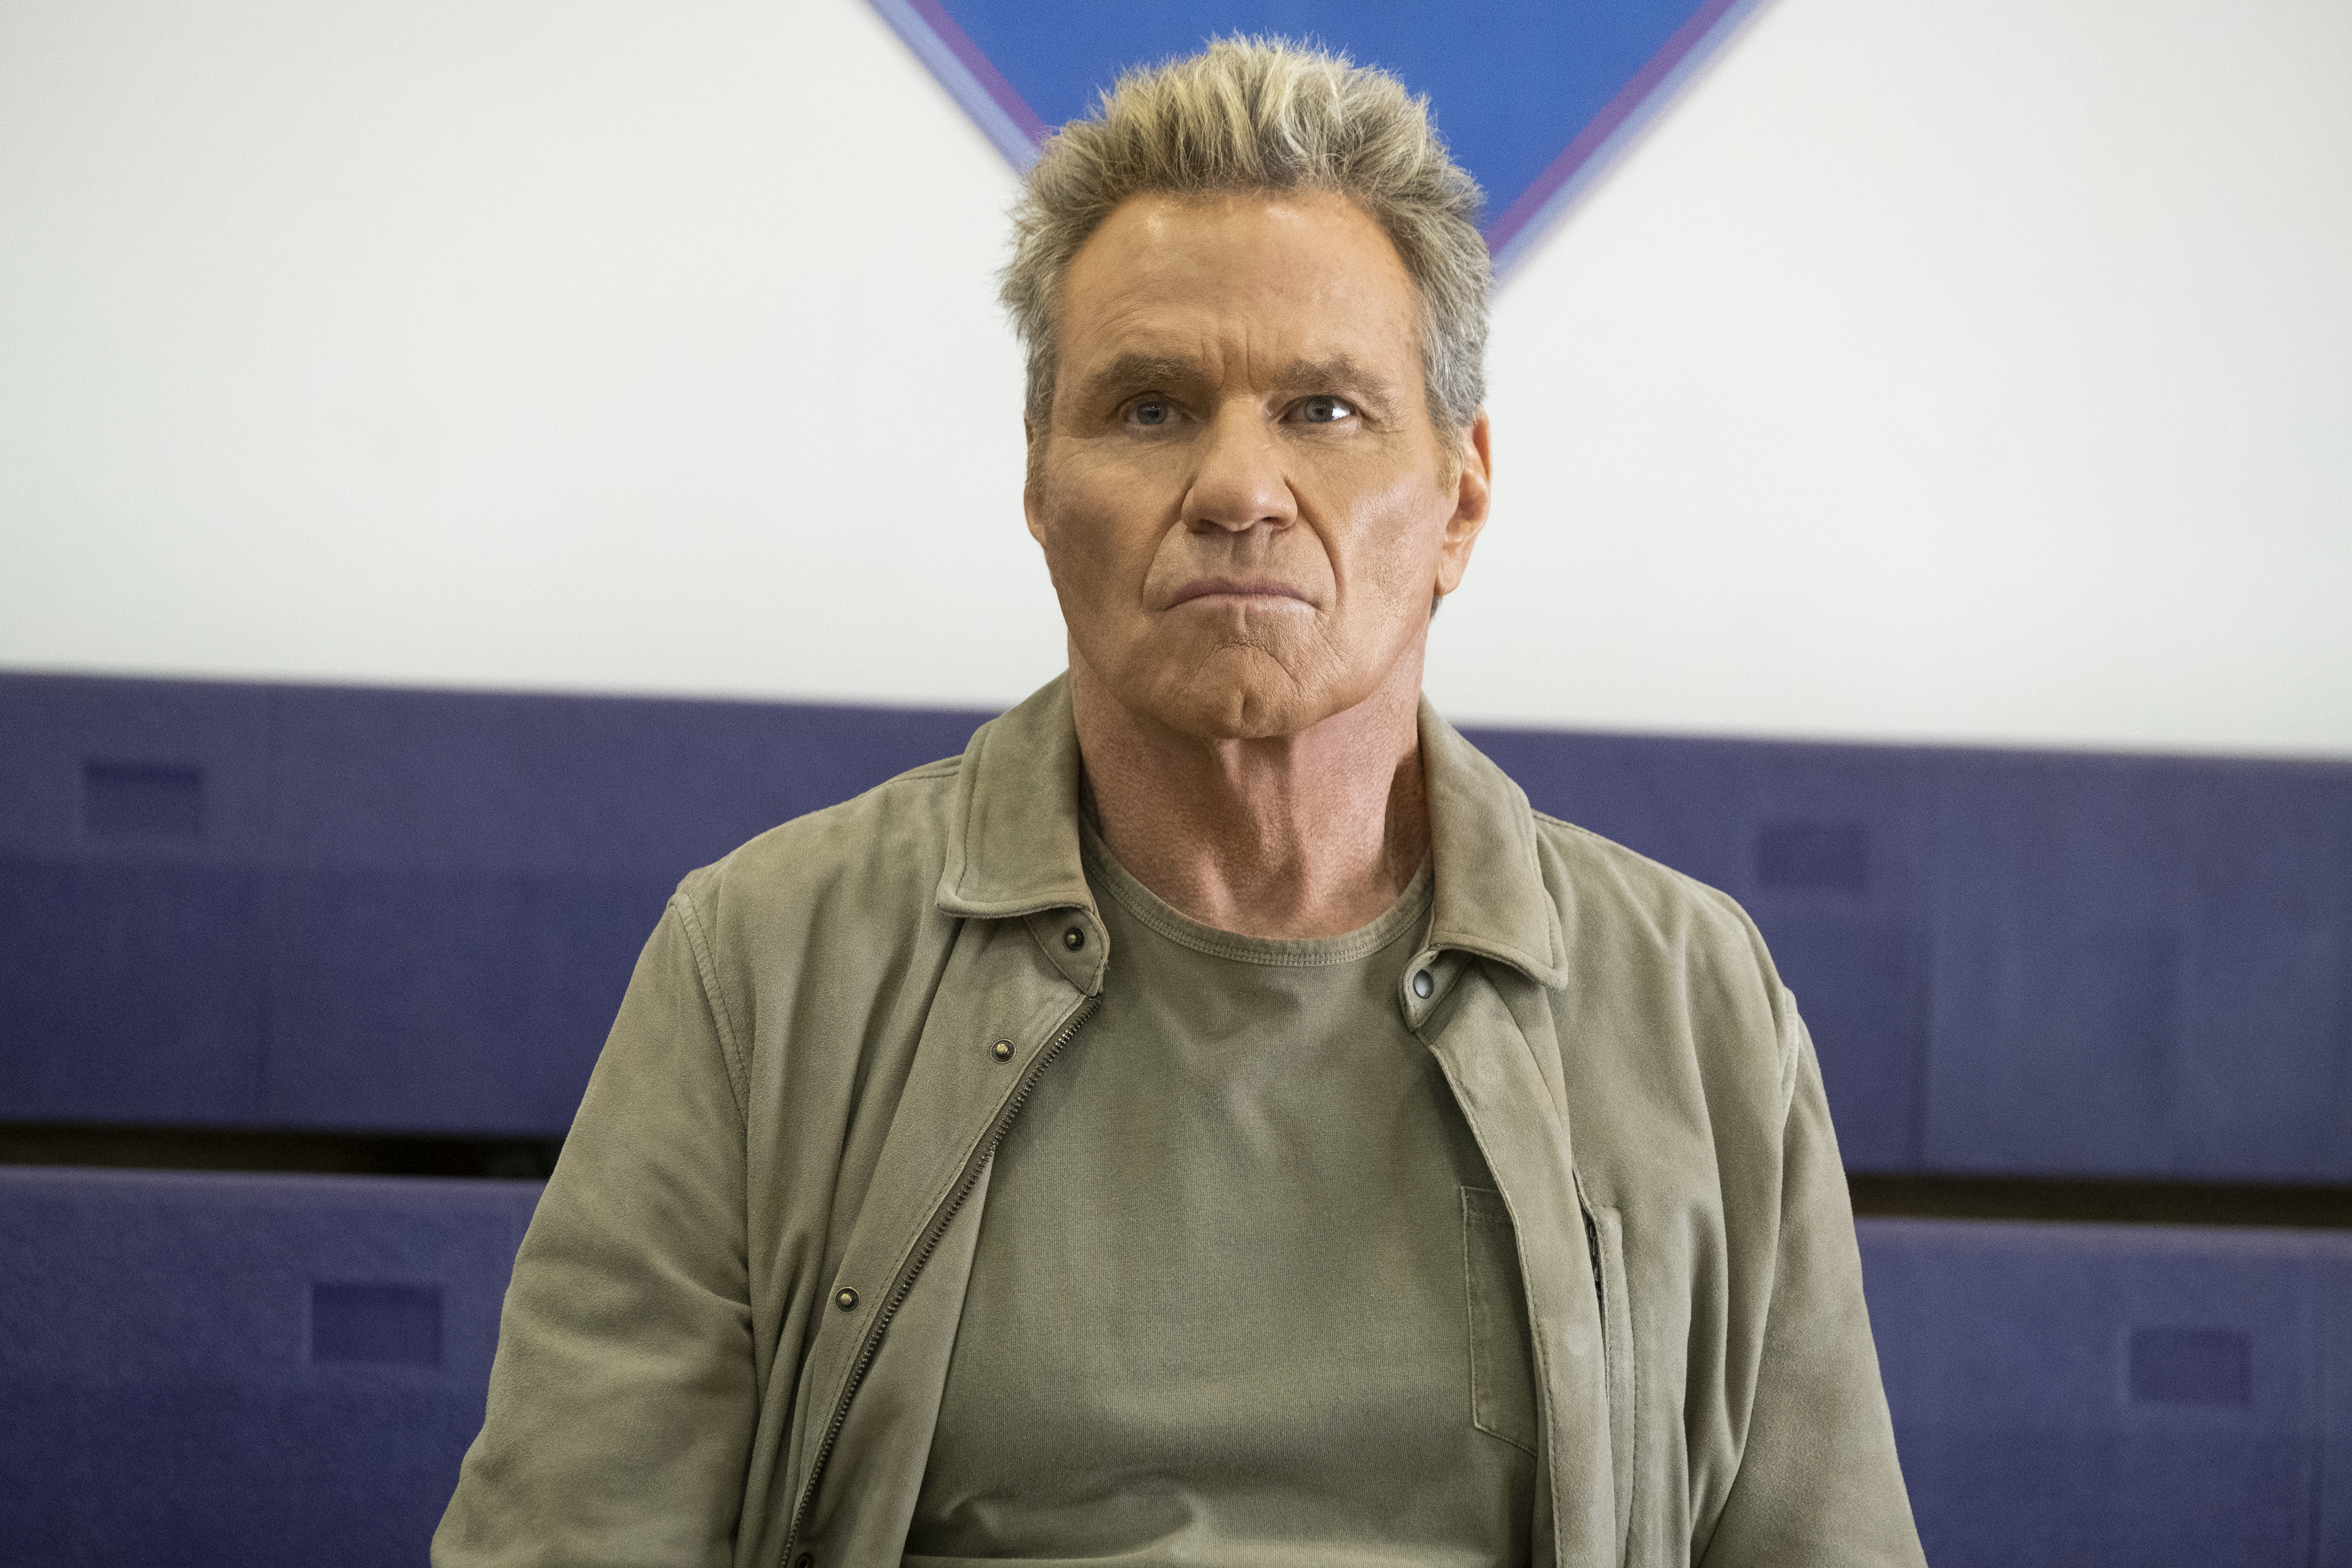 KREESE in Cobra Kai season 3. KREESE!